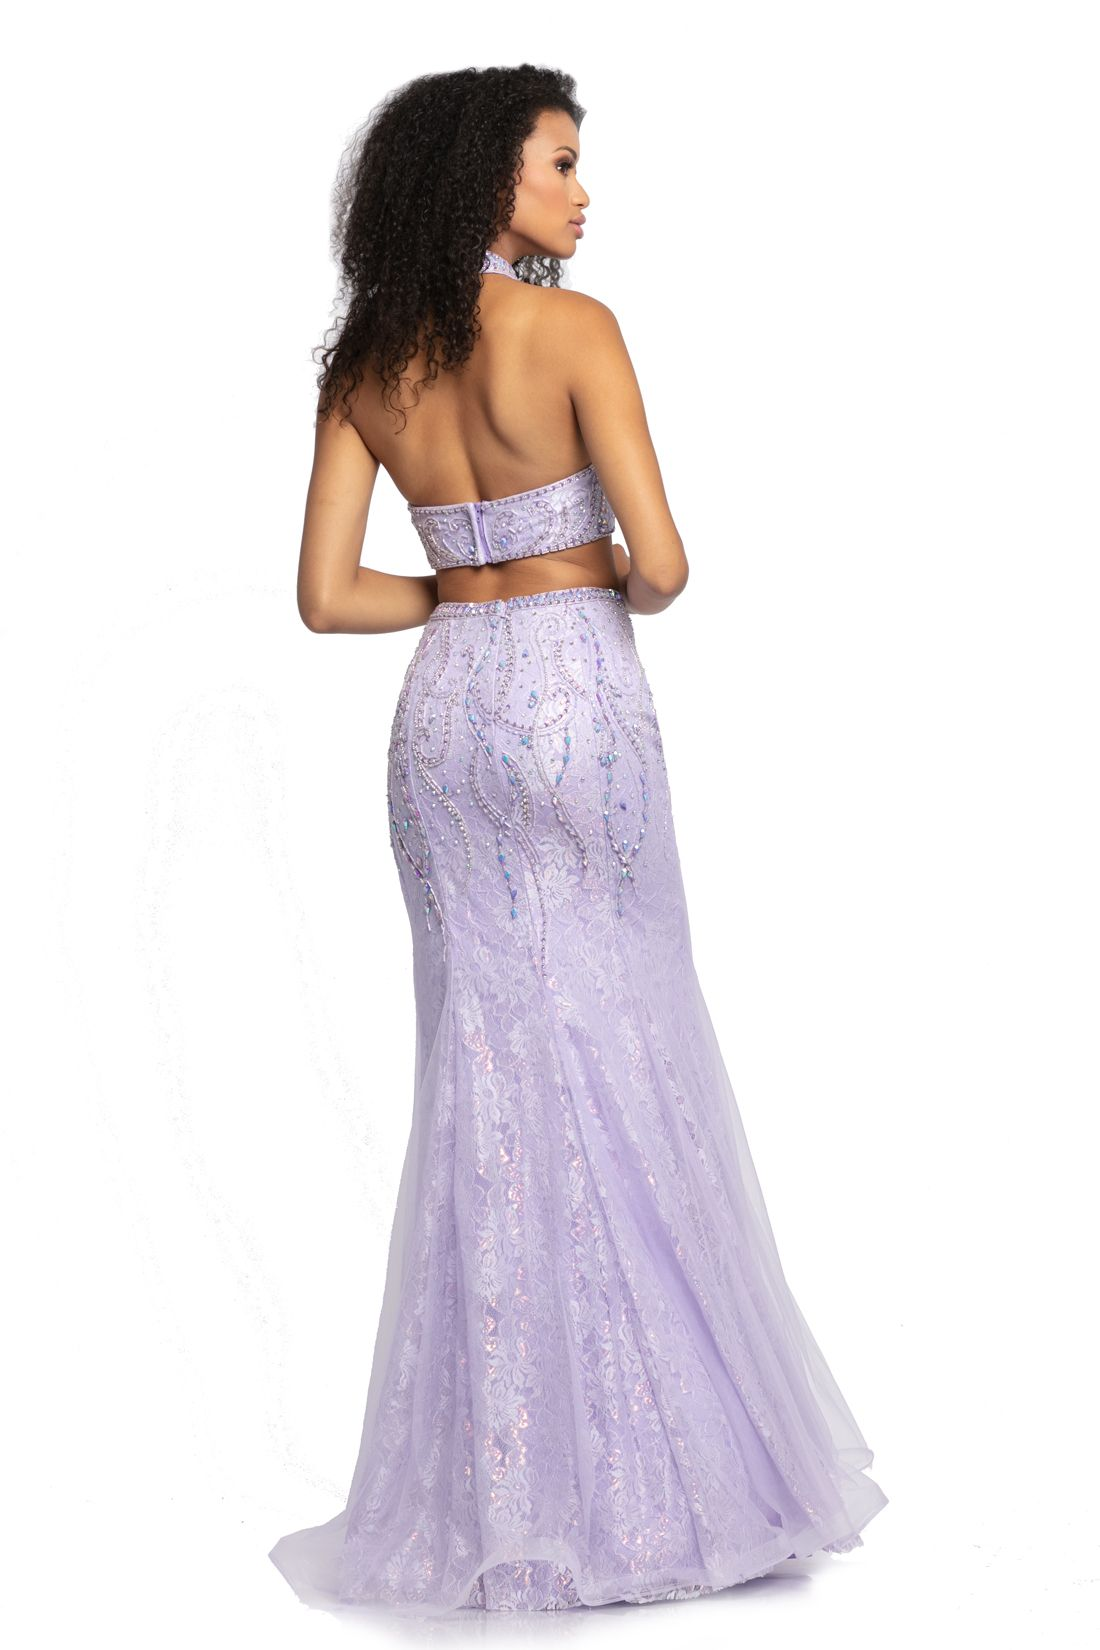 Johnathan Kayne Joshua Mckinley 2020 Prom Pageant Formal Wear Evening Gowns Authorized Retailer Pageant Dresses Piece Prom Dress Dresses [ 1650 x 1100 Pixel ]